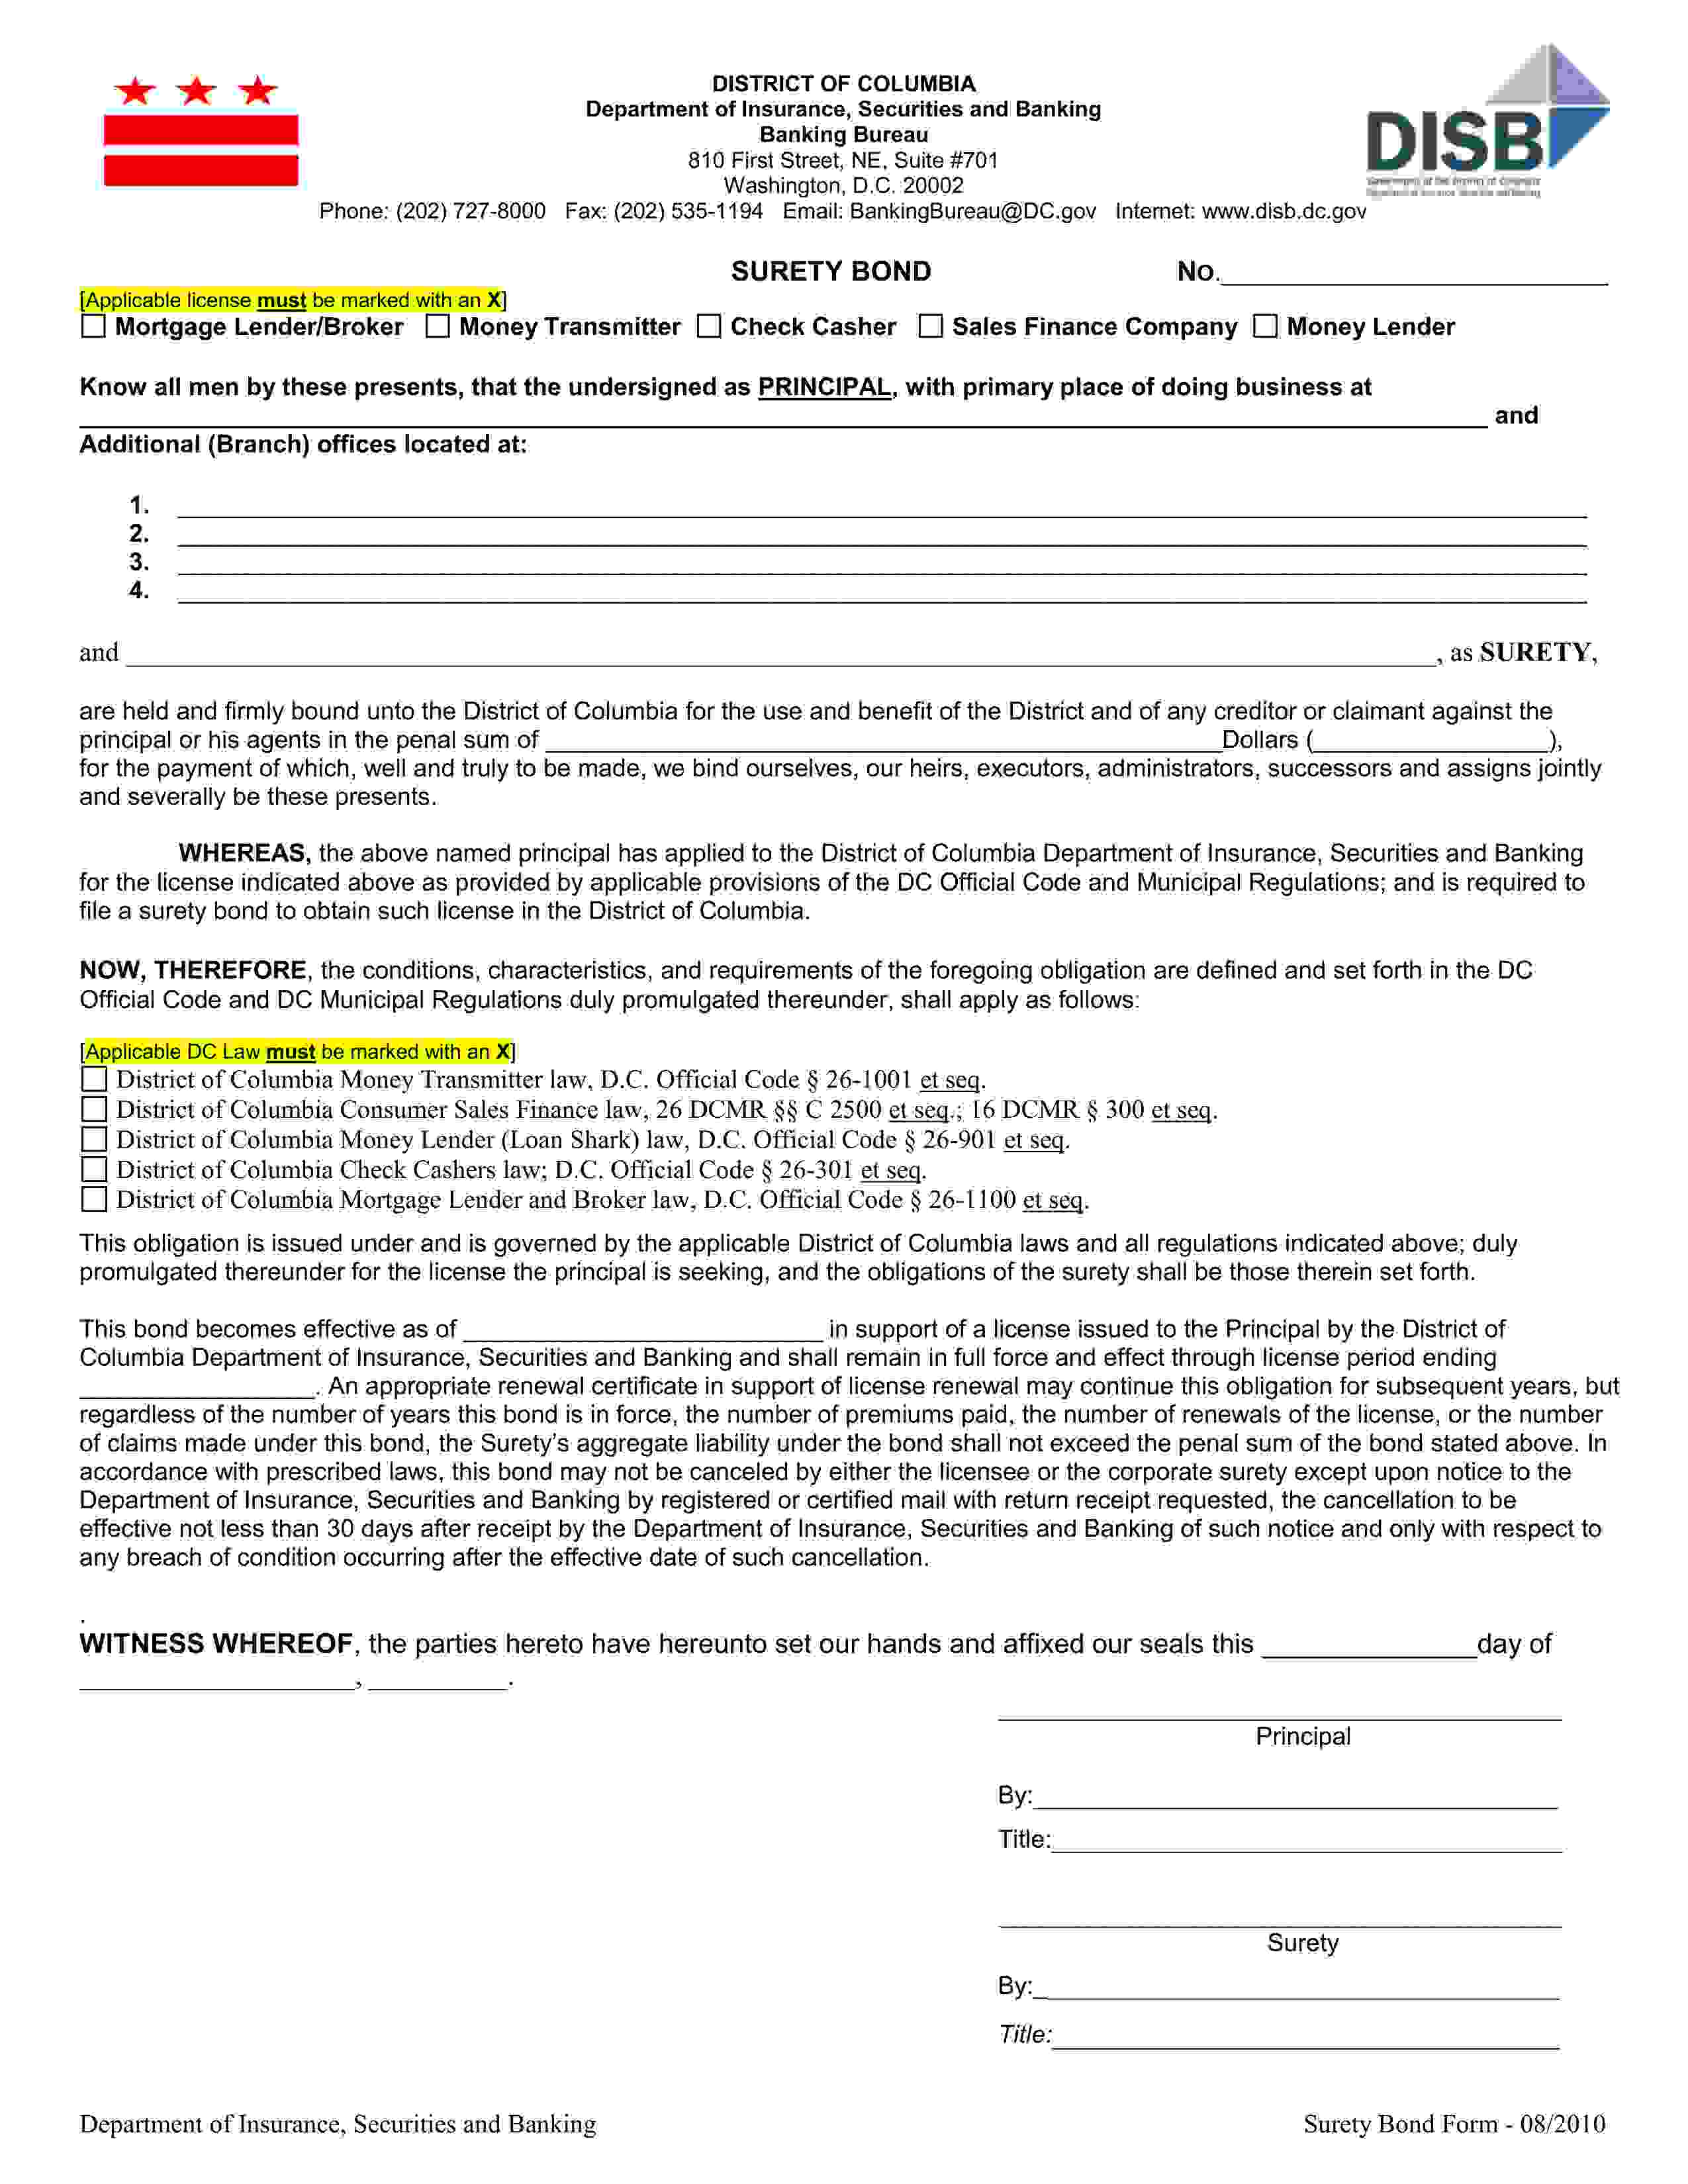 District of Columbia Department of Insurance, Securities, and Banking Retail Seller & Sales Finance Company sample image